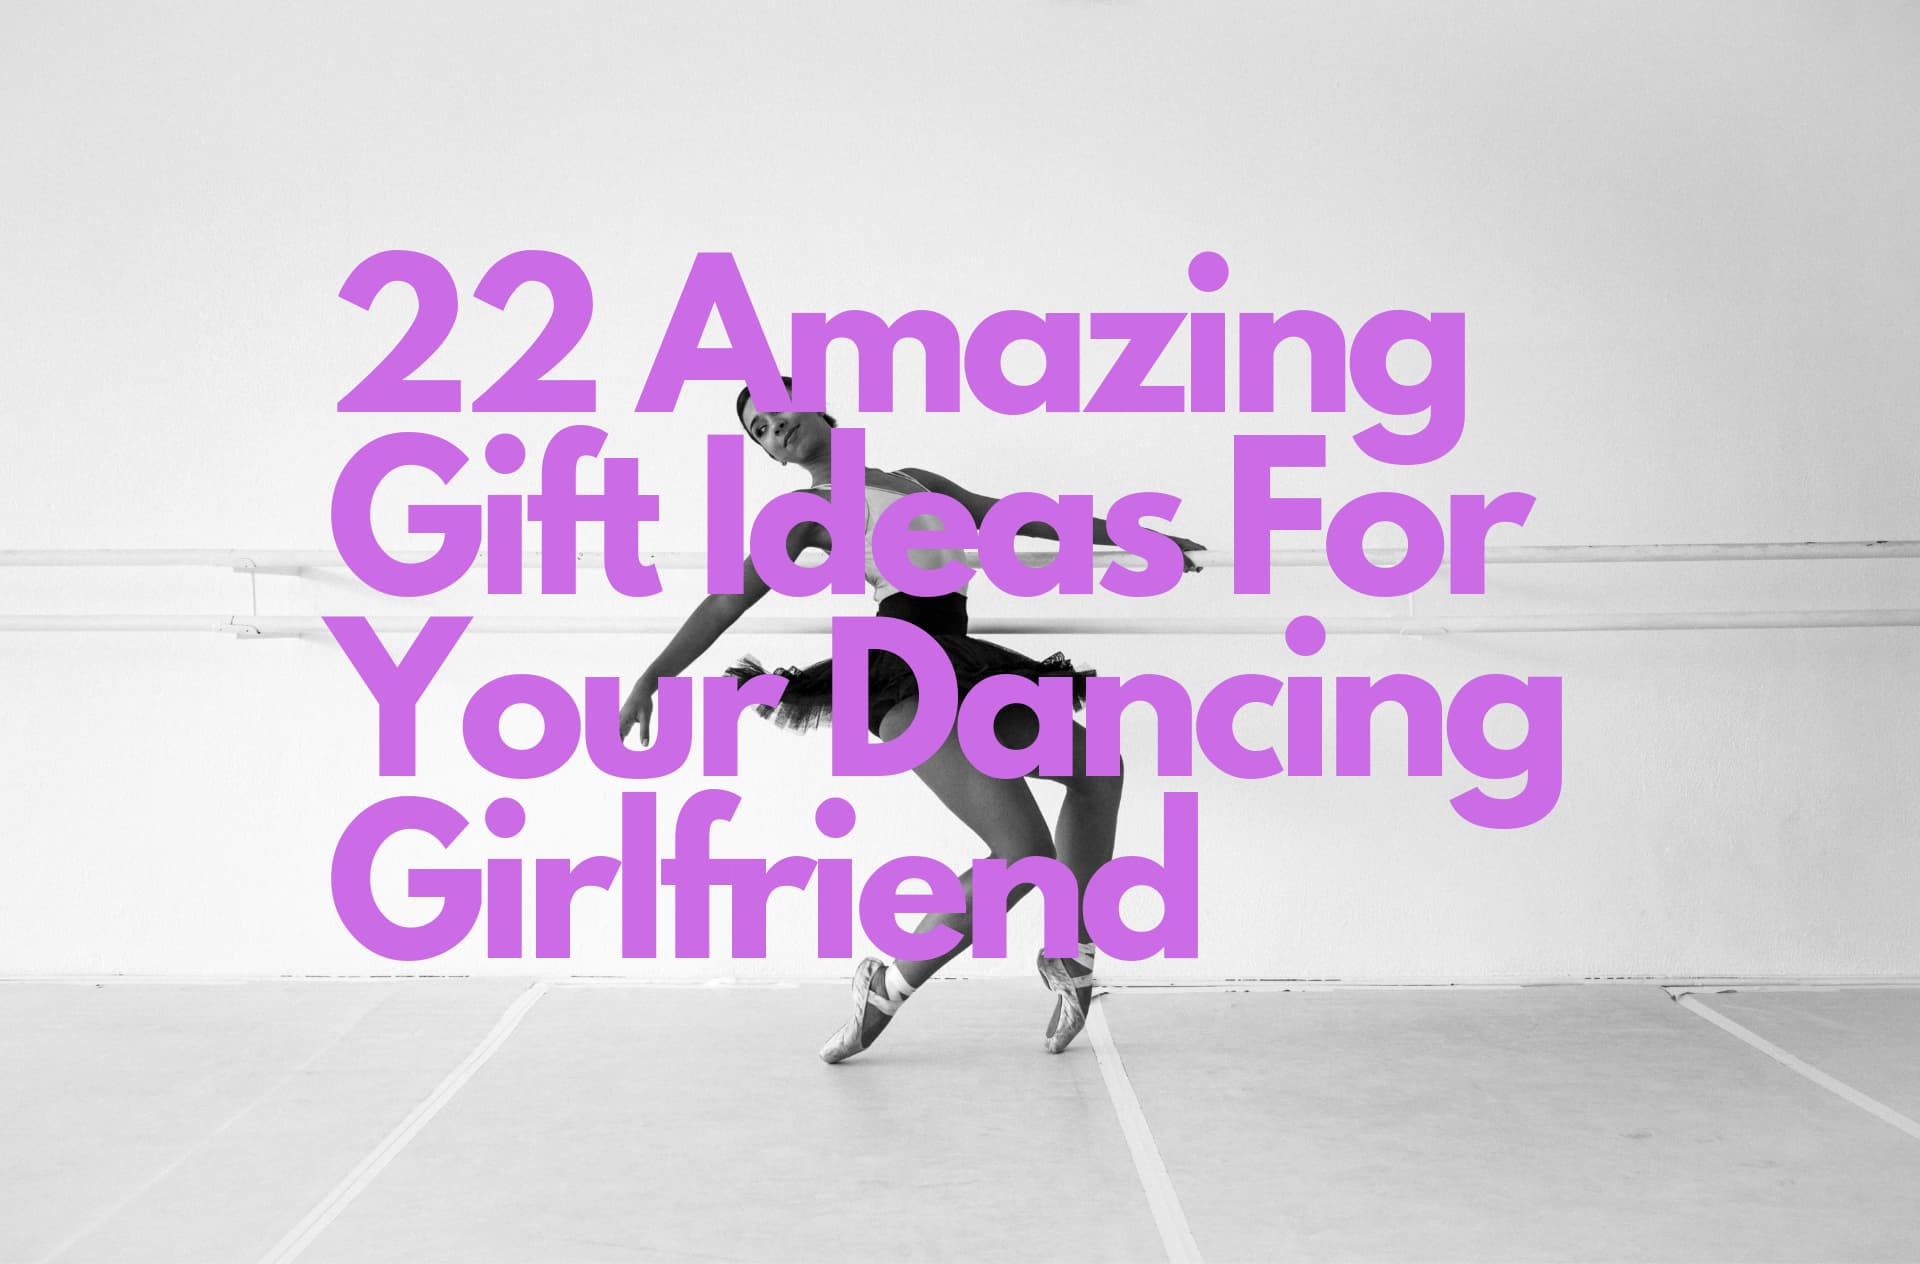 22 Amazing Gift Ideas For Your Dancing Girlfriend